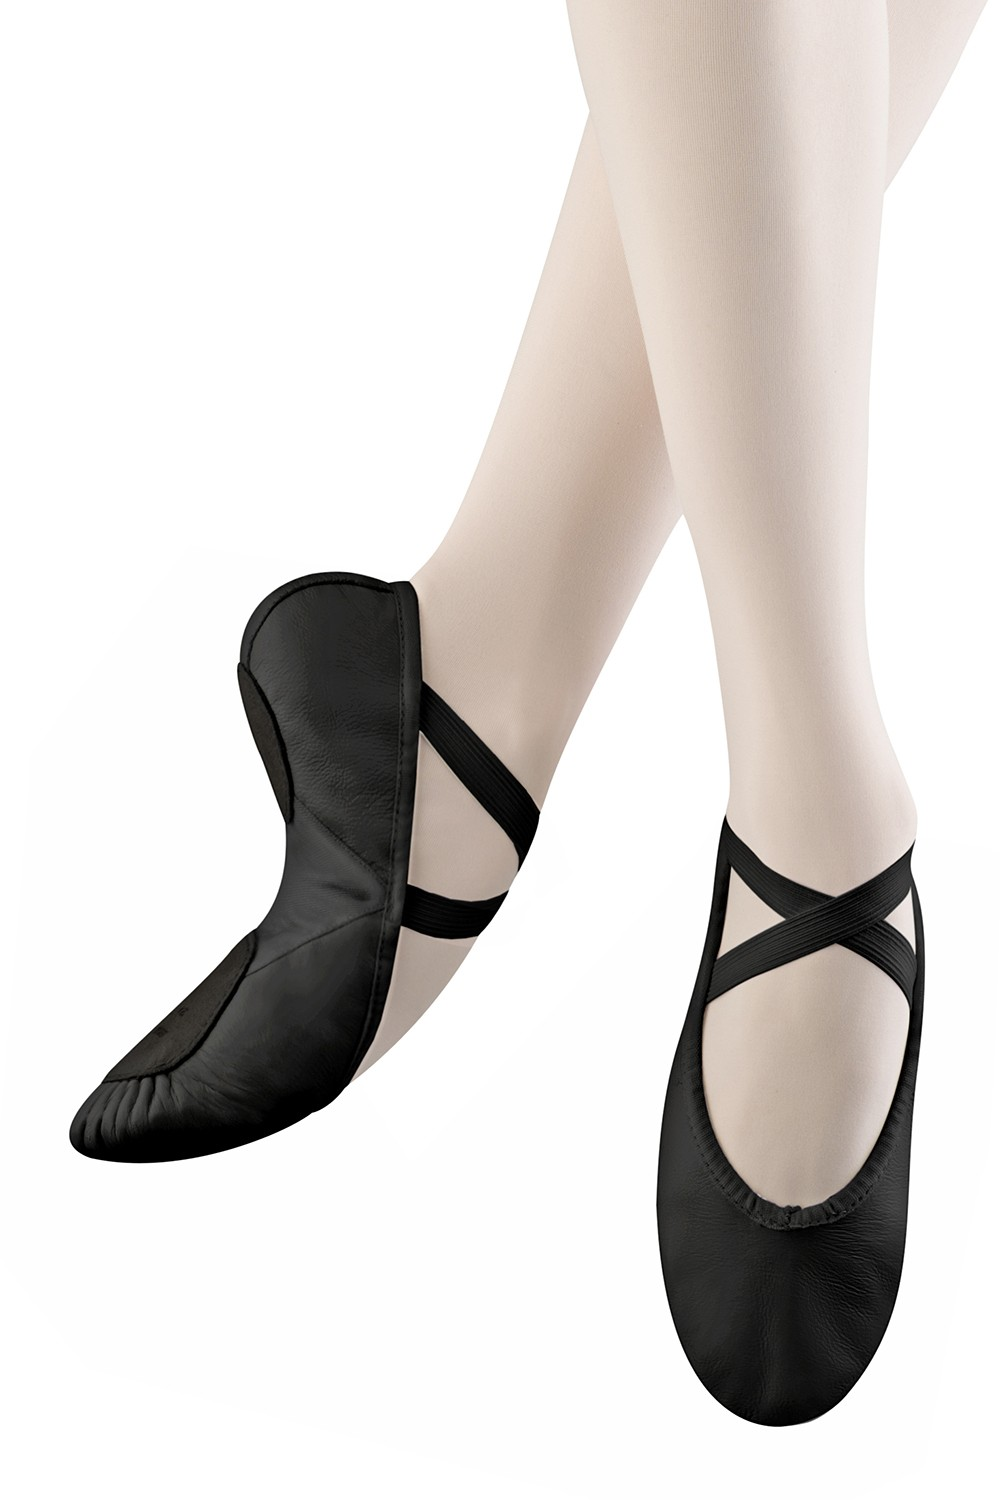 Mens Prolite Ii Men's Ballet Shoes